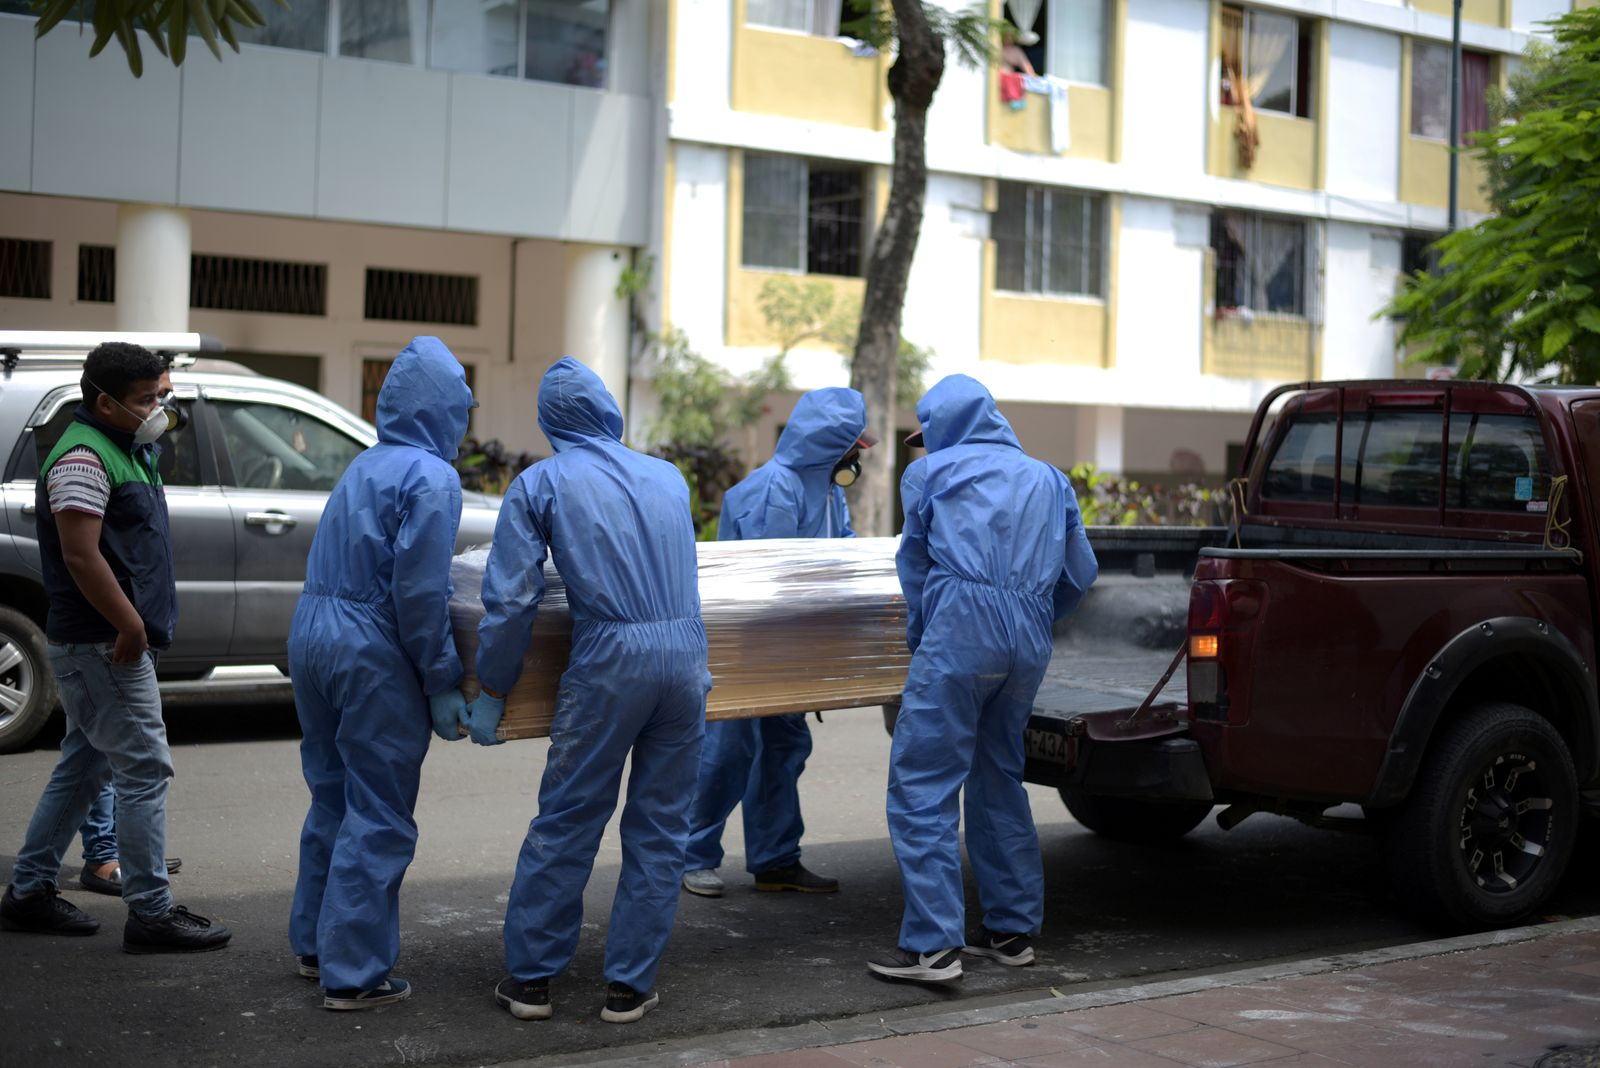 Funeral home workers in protective gear load a coffin containing the body of a man as the coronavirus disease (COVID-19) overwhelms sanitary authorities, in Guayaquil